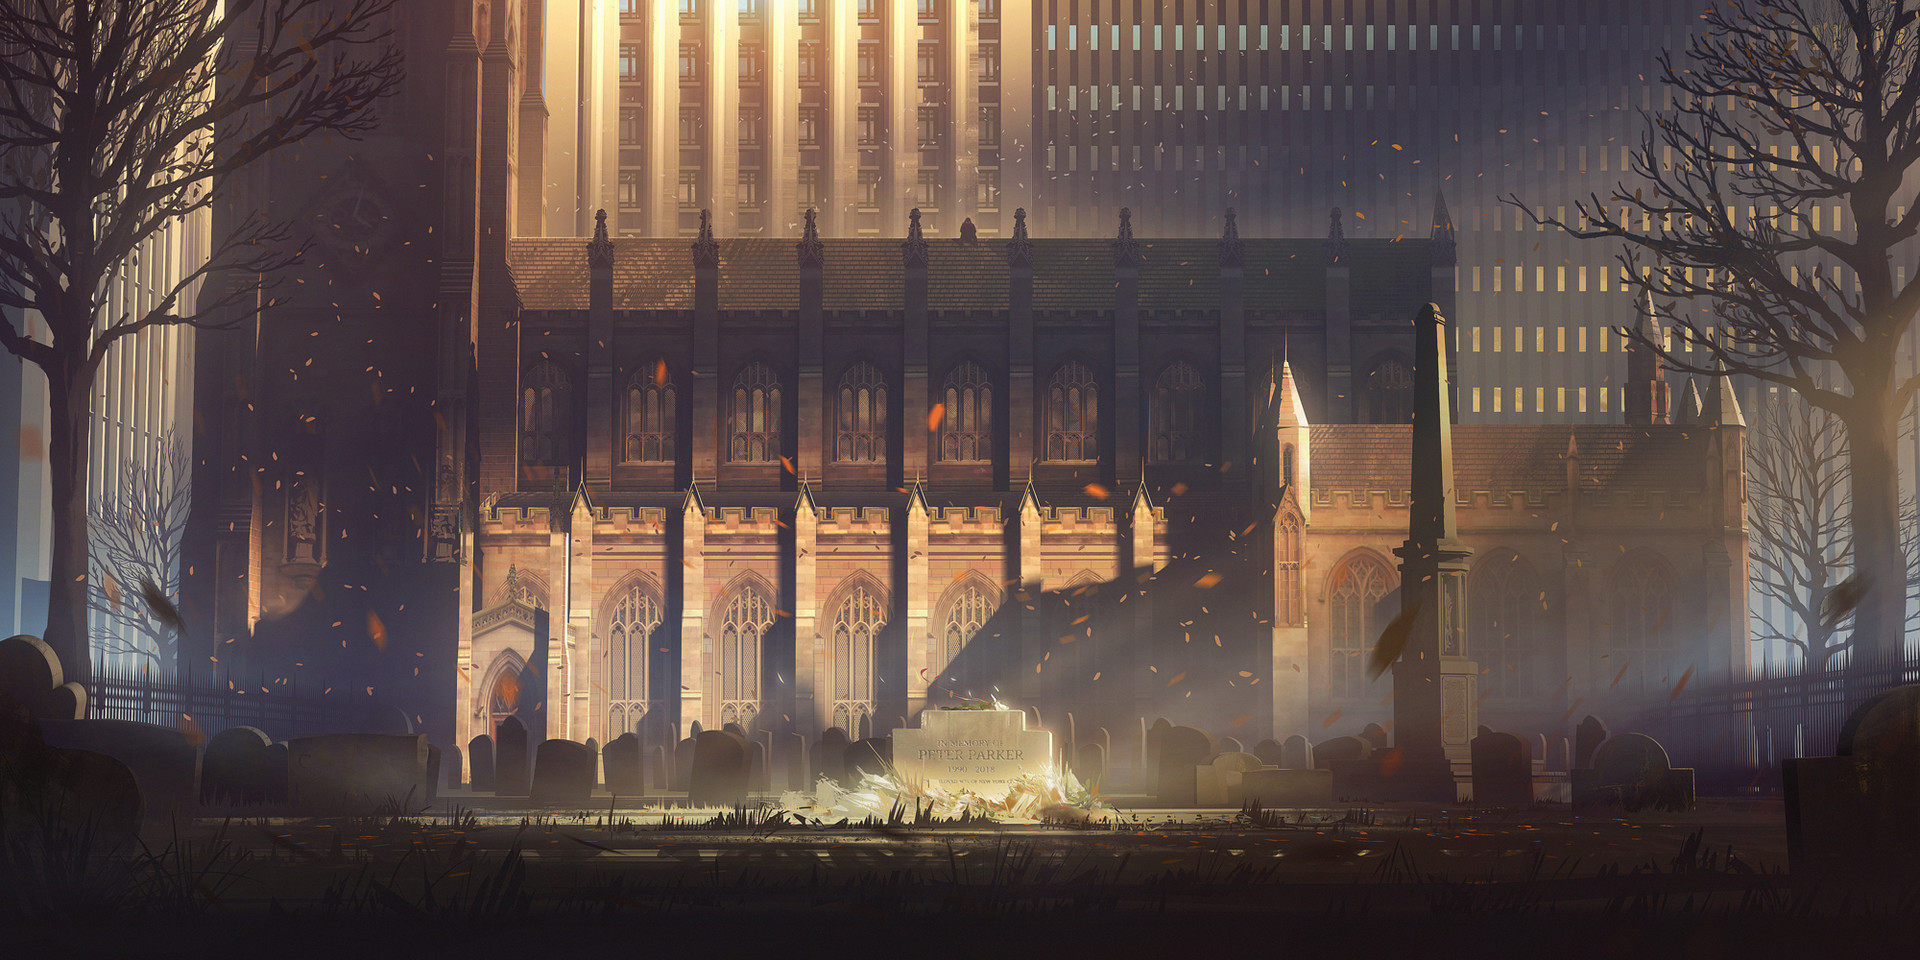 Jessica rossier wls sony cabin fever church01